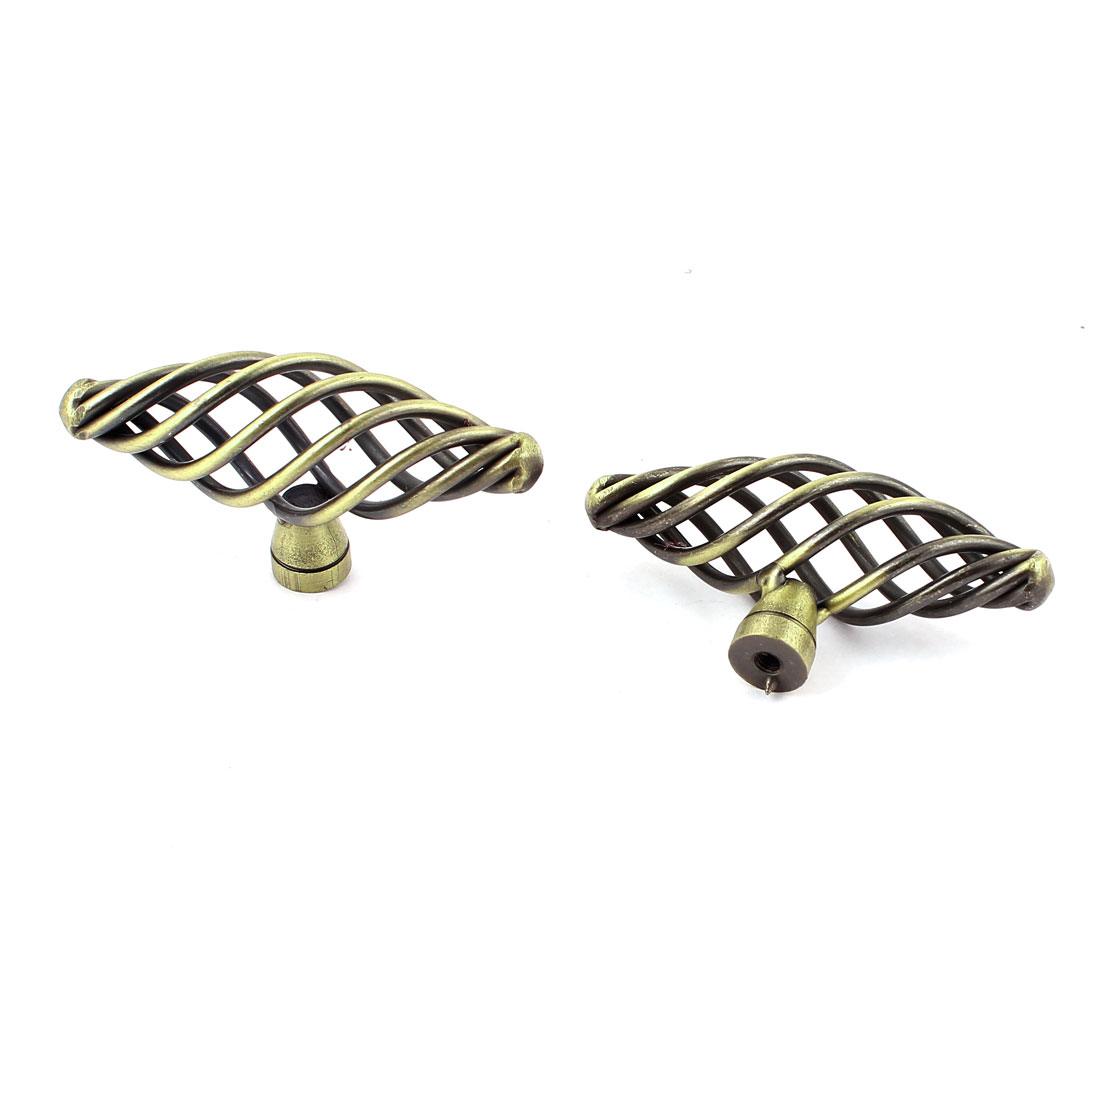 2pcs Vintage Style Twist Birdcage T-Handle Knobs Cabinet Drawer Door Pull Handle